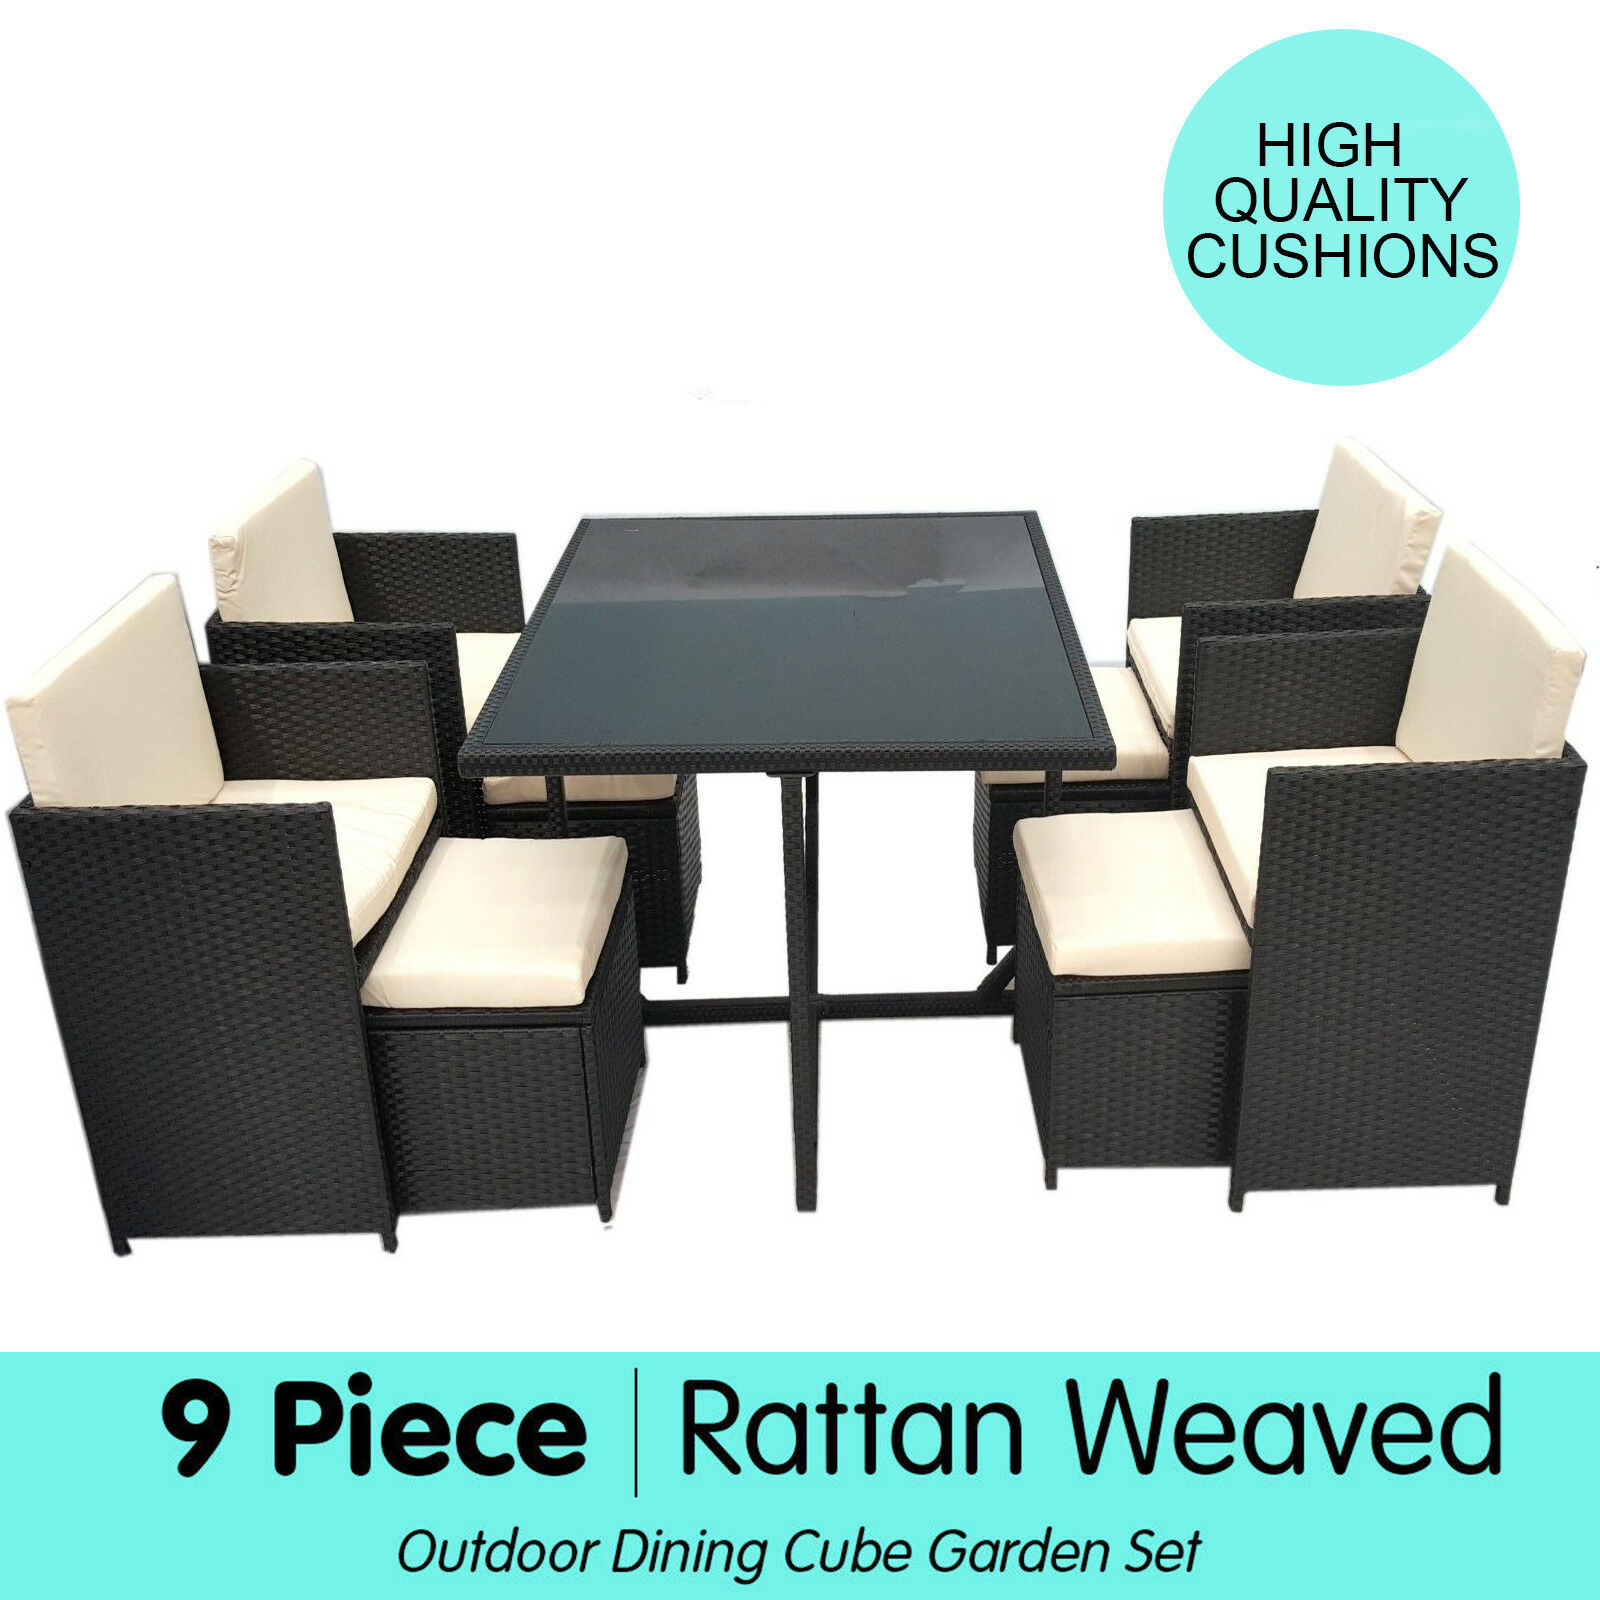 Outdoor Table And Chair Set 9pc Rattan Wicker Outdoor Dining Table Chair Outdoor Furniture Set Coffee Brown